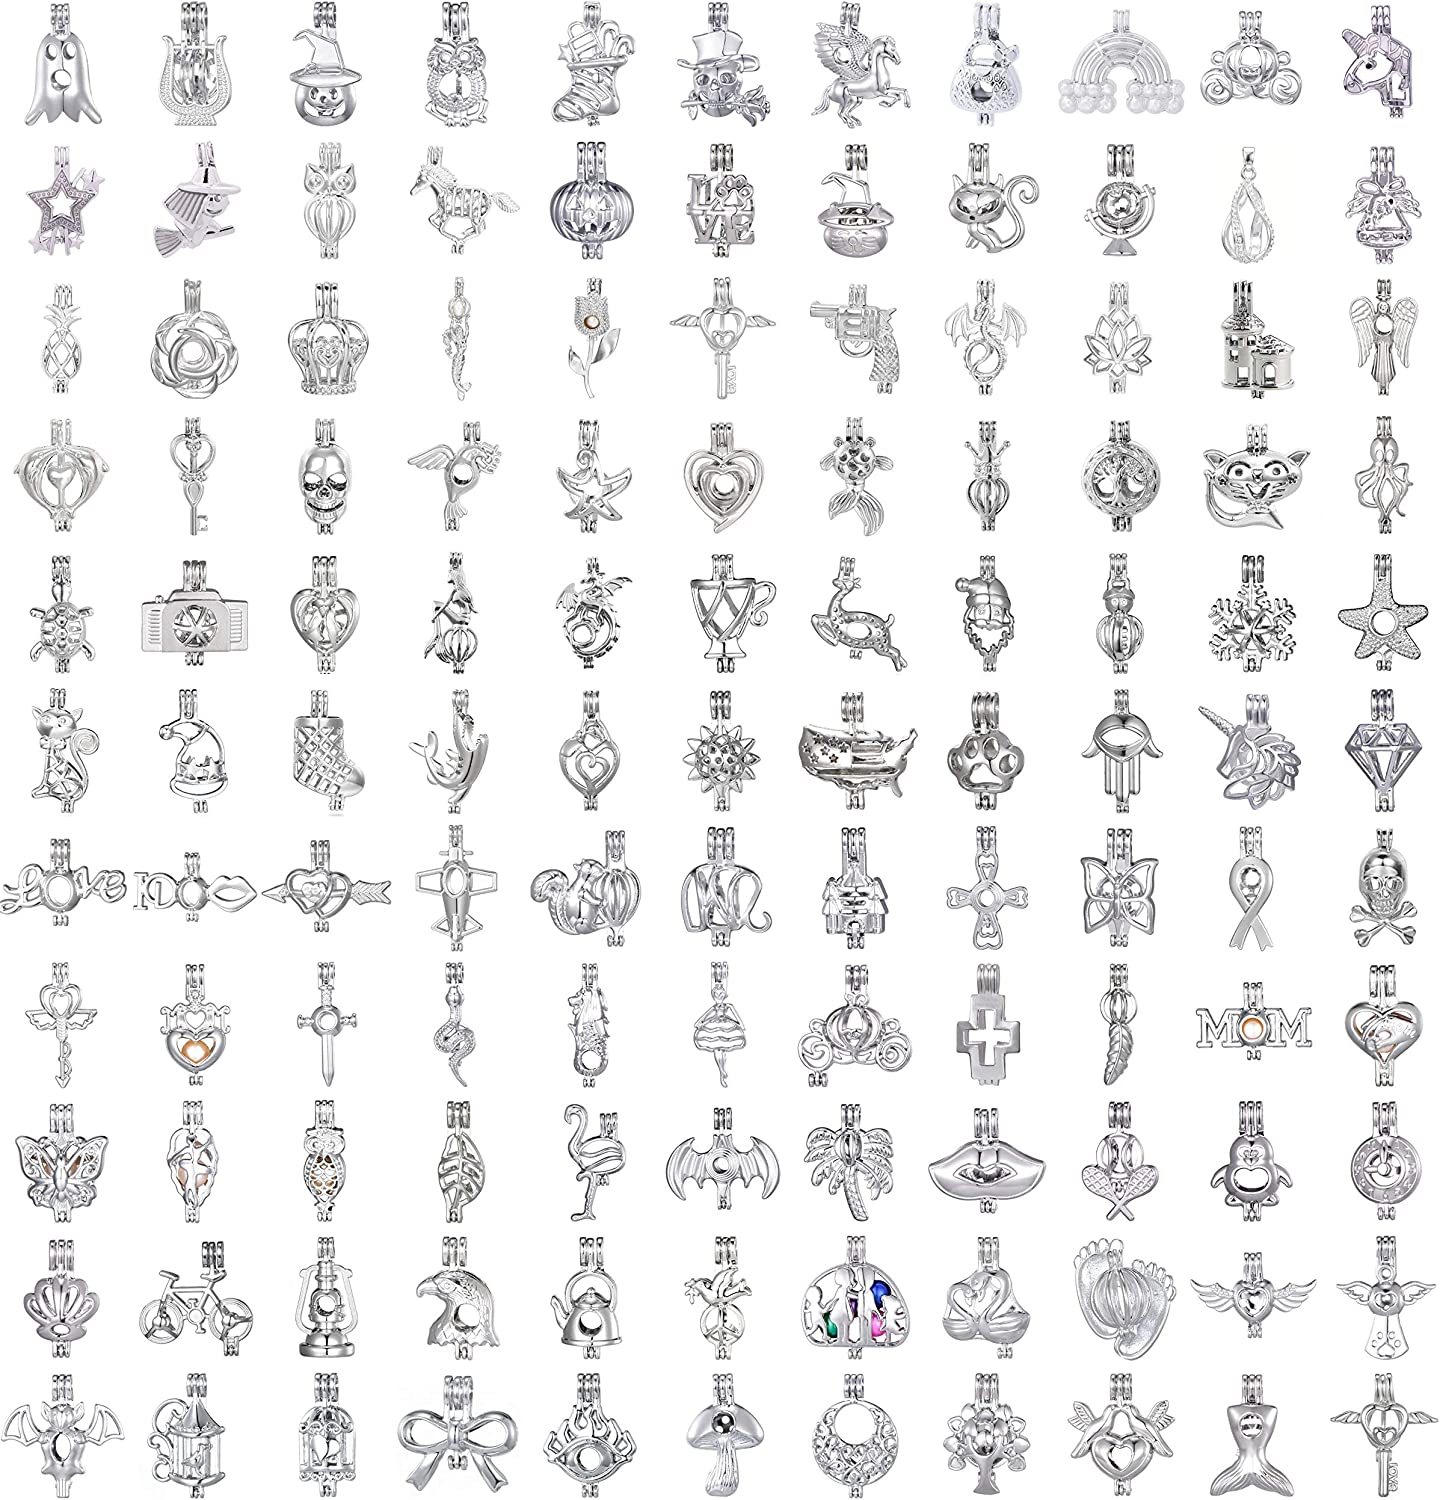 40pcs Mix Stainless Max 78% OFF Steel Tones Alloy Bead Time sale Pendant Lav Cage Wish